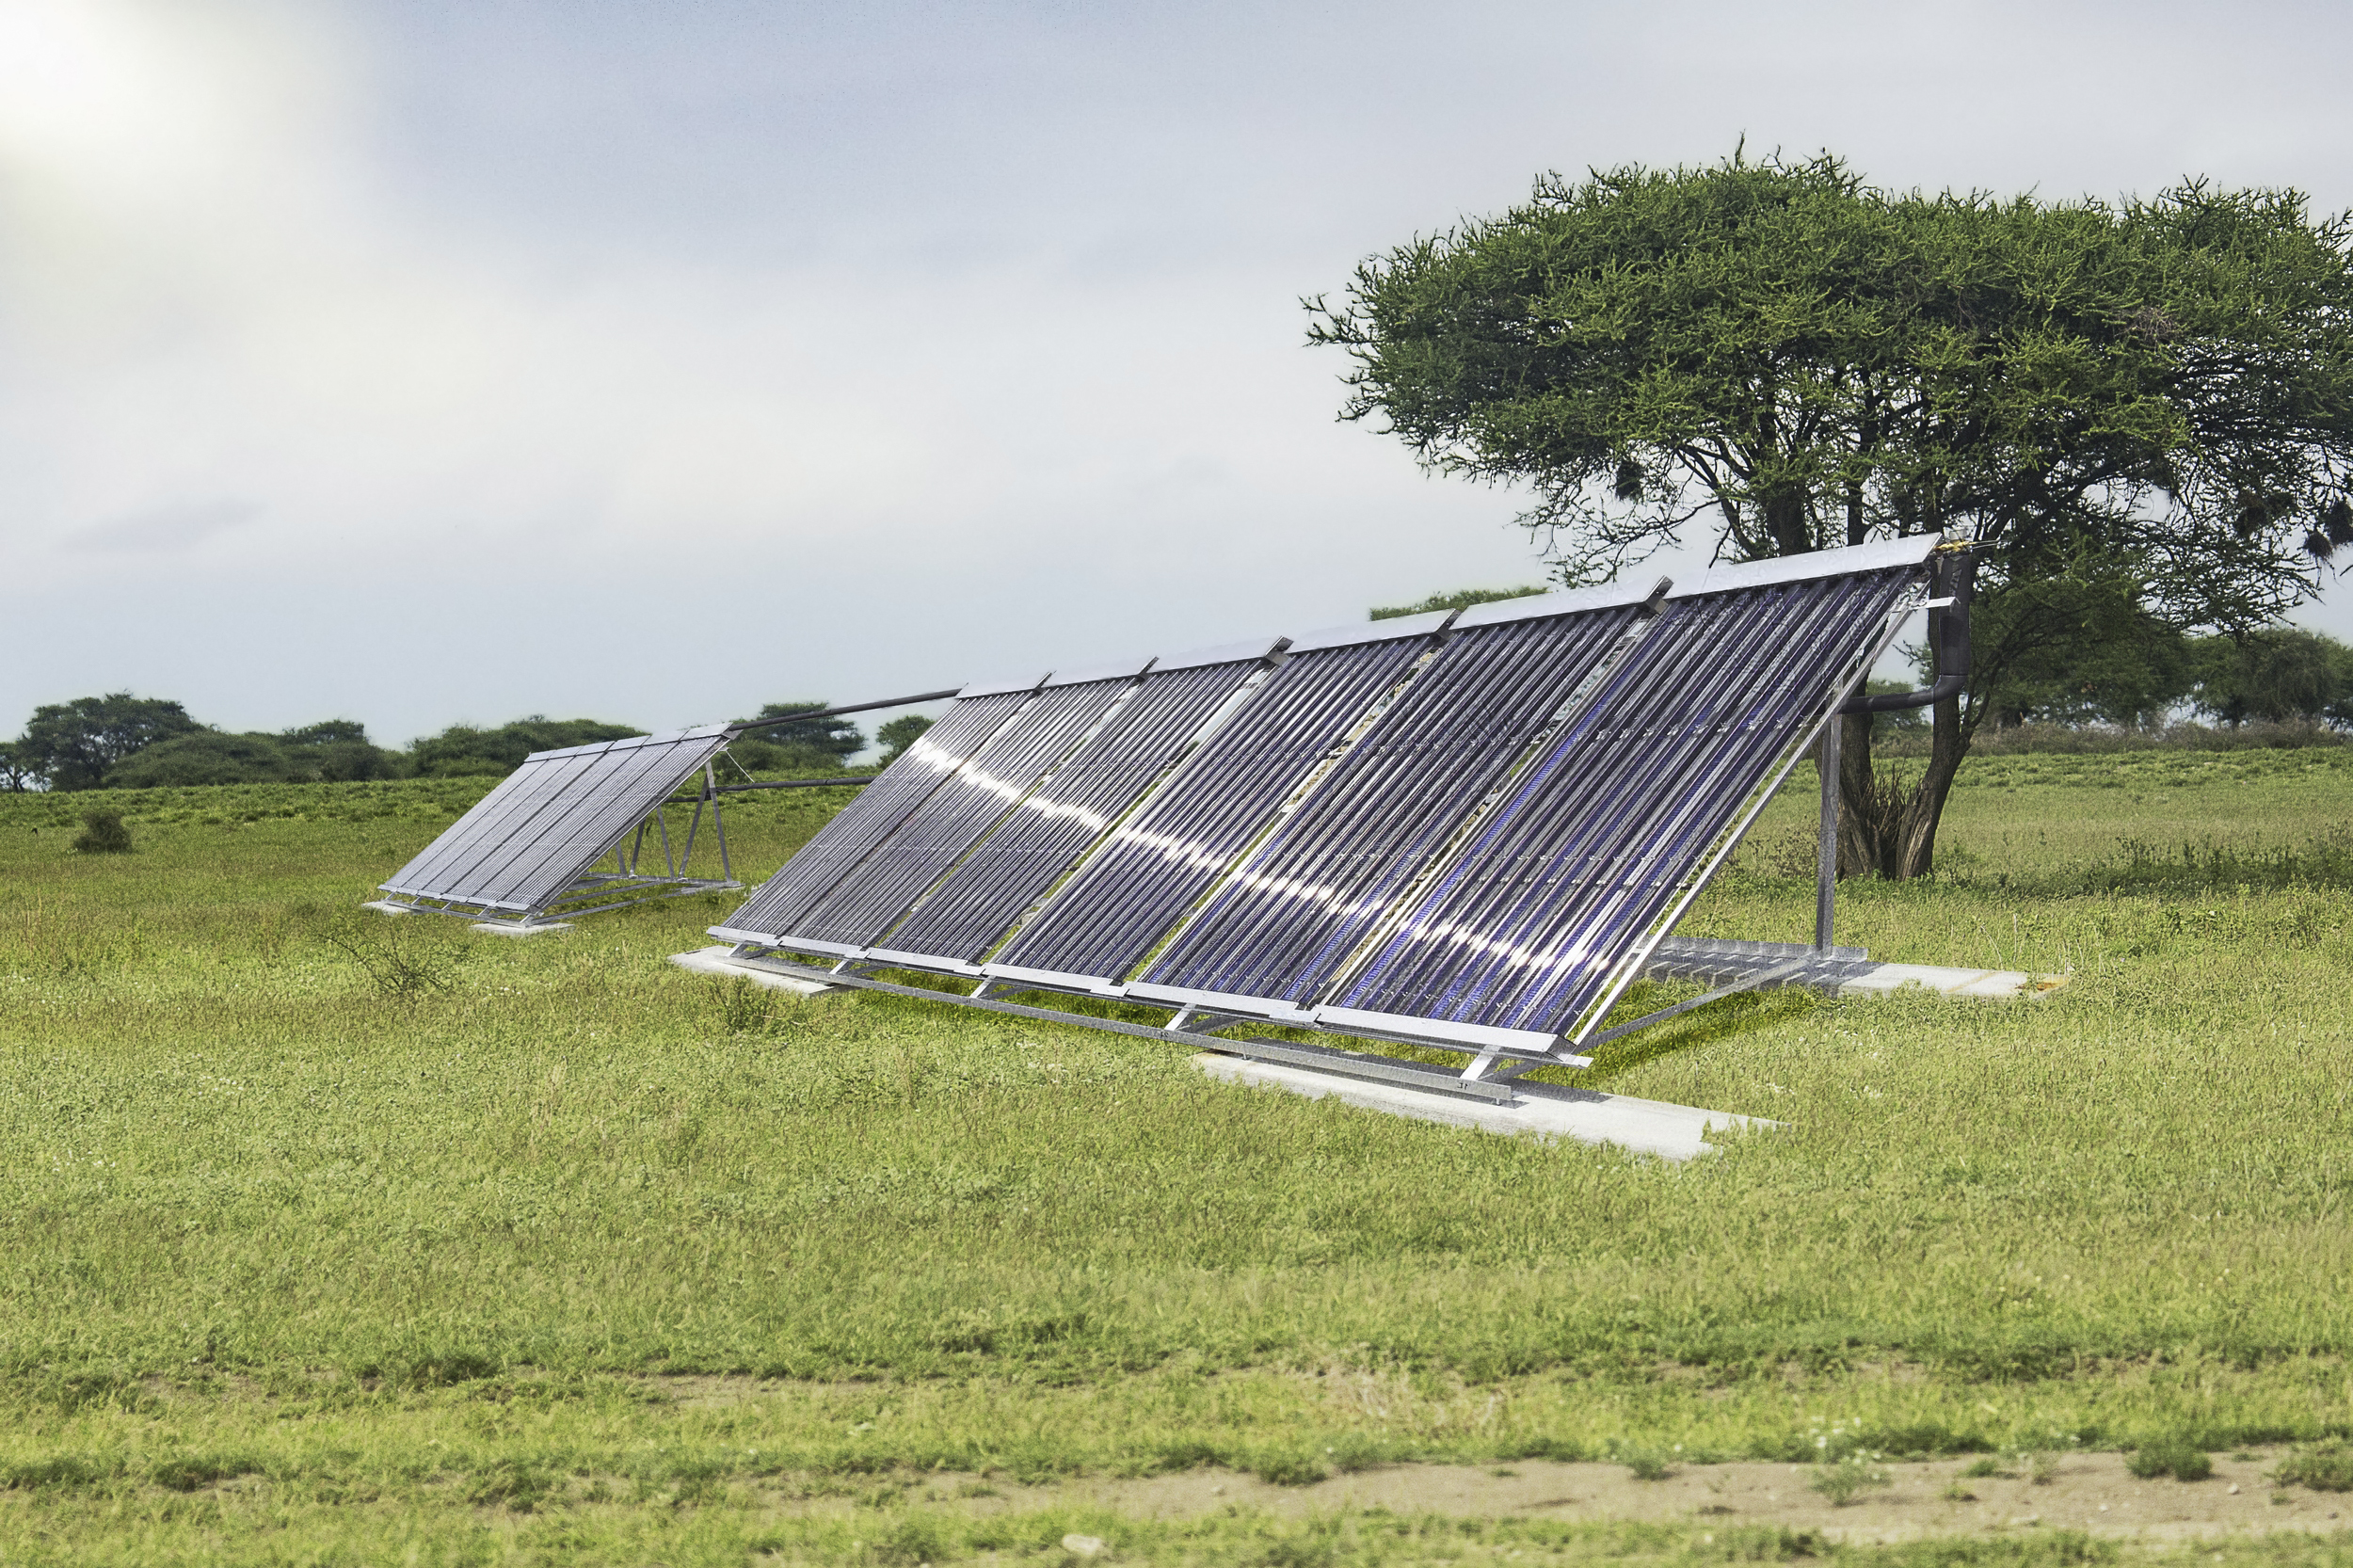 Solar power – an alternative source of energy for EMSF